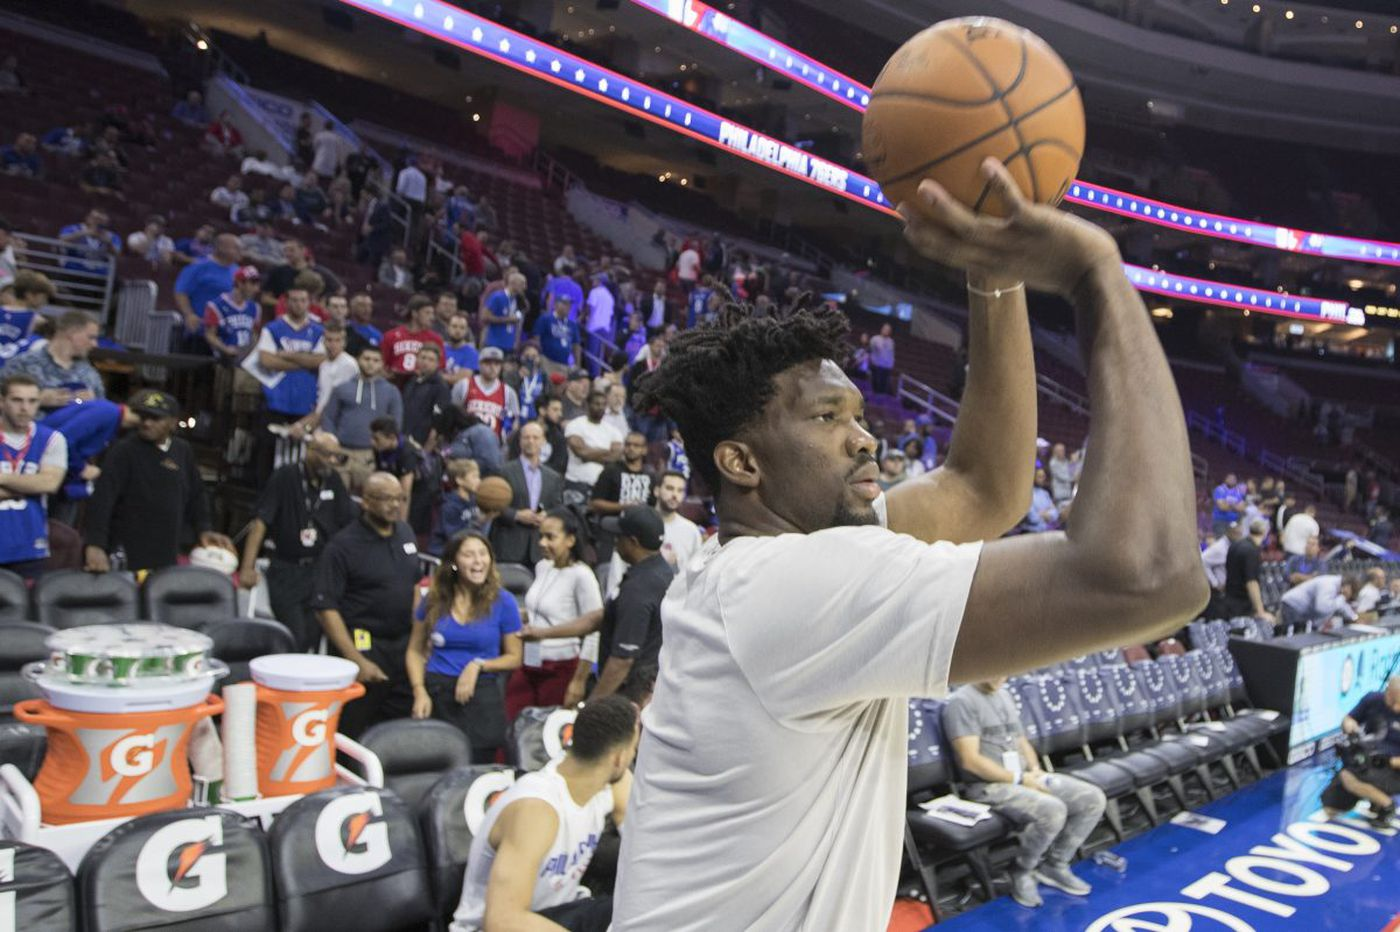 Joel Embiid dominates full-court Sixers scrimmage, but team remains cautious